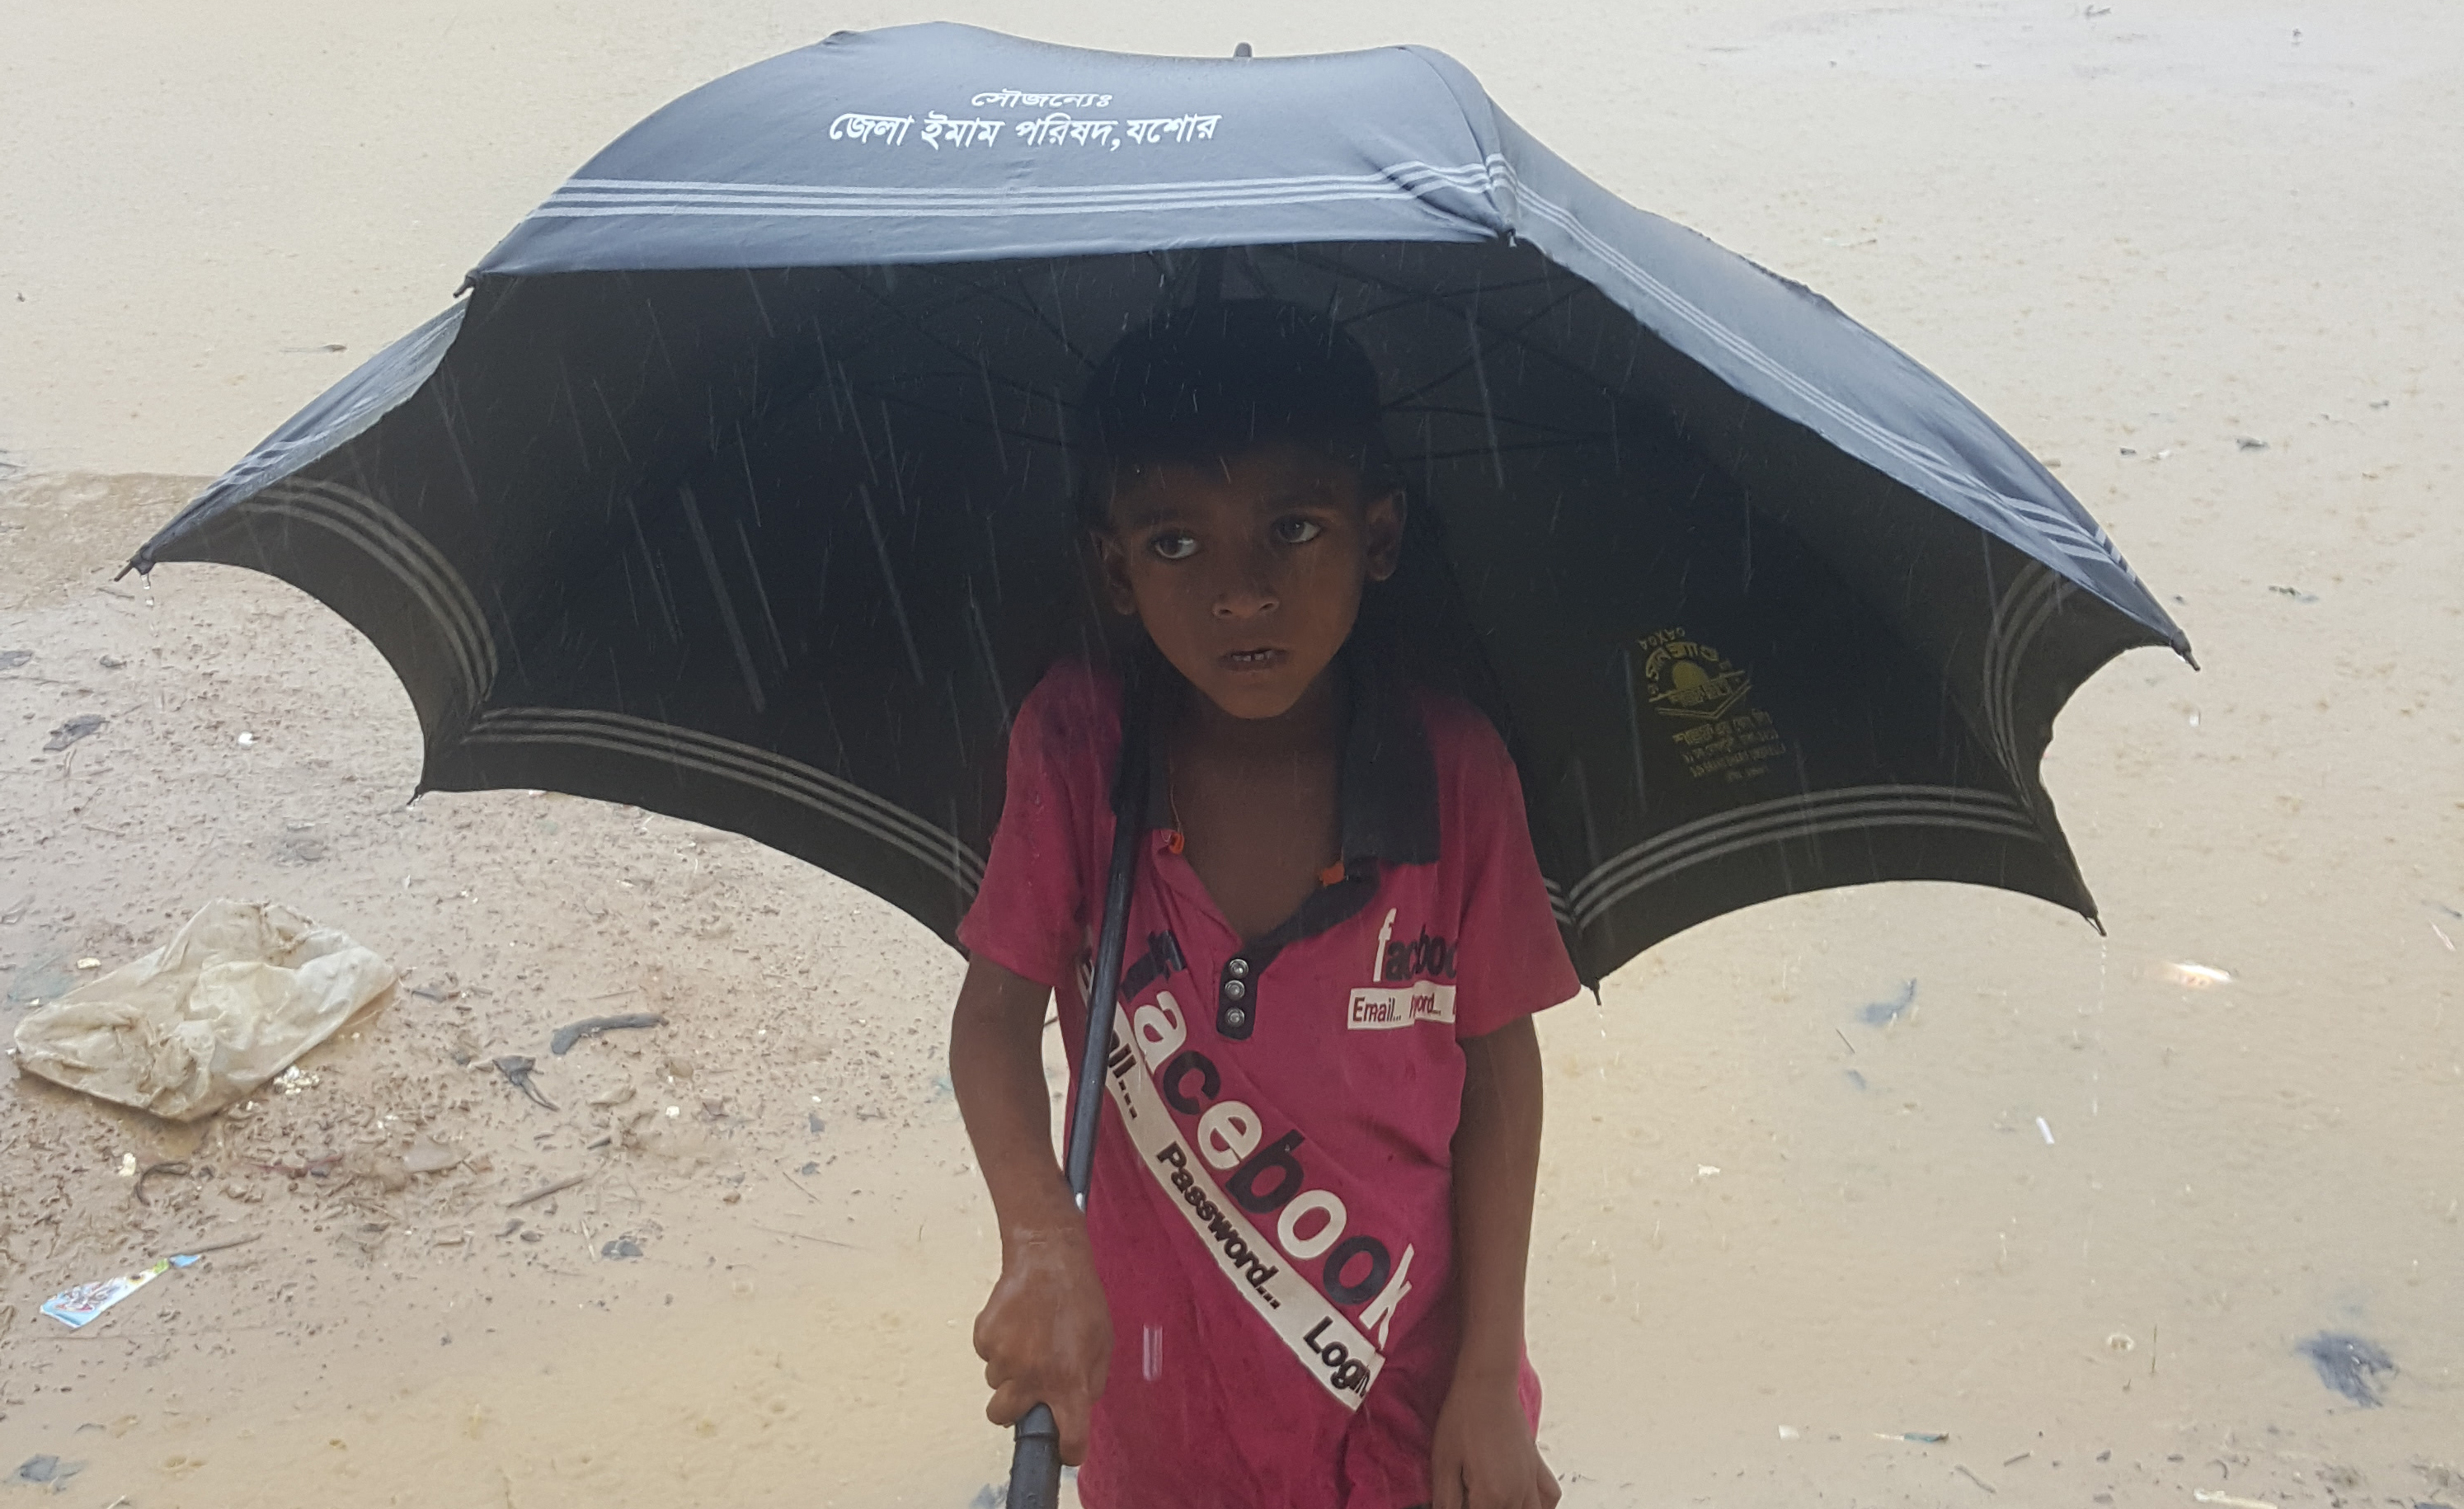 Child in mud and rain with umbrella